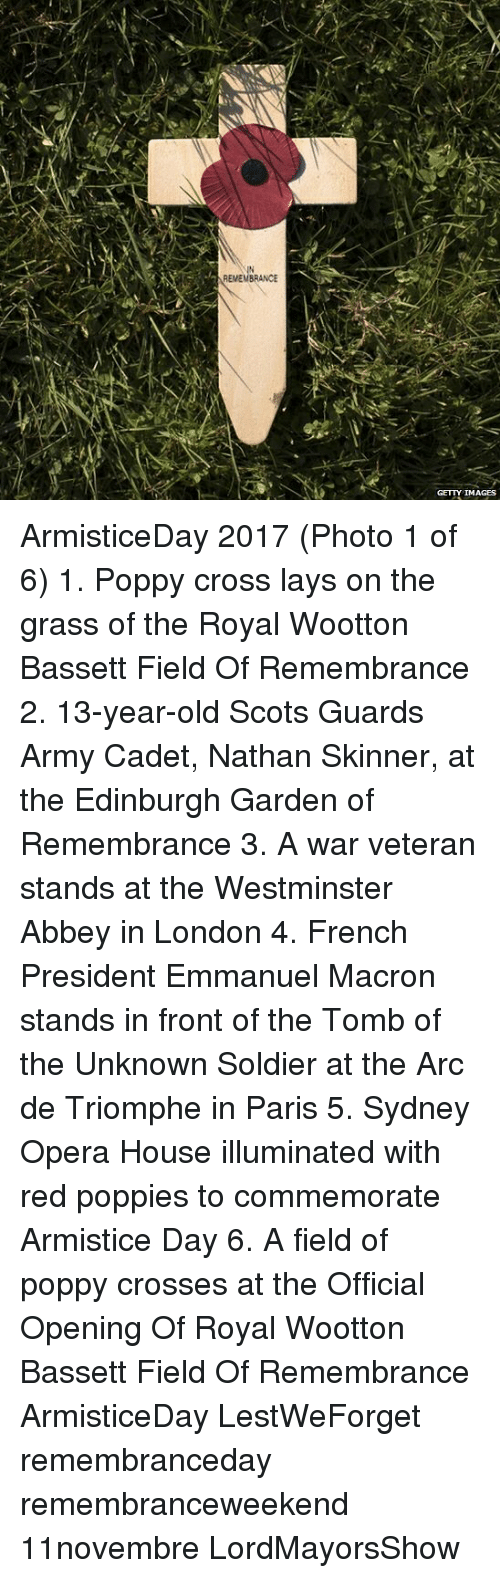 Lay's, Memes, and Army: IN  EMEMBRANCE  GETTY IMAGES ArmisticeDay 2017 (Photo 1 of 6) 1. Poppy cross lays on the grass of the Royal Wootton Bassett Field Of Remembrance 2. 13-year-old Scots Guards Army Cadet, Nathan Skinner, at the Edinburgh Garden of Remembrance 3. A war veteran stands at the Westminster Abbey in London 4. French President Emmanuel Macron stands in front of the Tomb of the Unknown Soldier at the Arc de Triomphe in Paris 5. Sydney Opera House illuminated with red poppies to commemorate Armistice Day 6. A field of poppy crosses at the Official Opening Of Royal Wootton Bassett Field Of Remembrance ArmisticeDay LestWeForget remembranceday remembranceweekend 11novembre LordMayorsShow